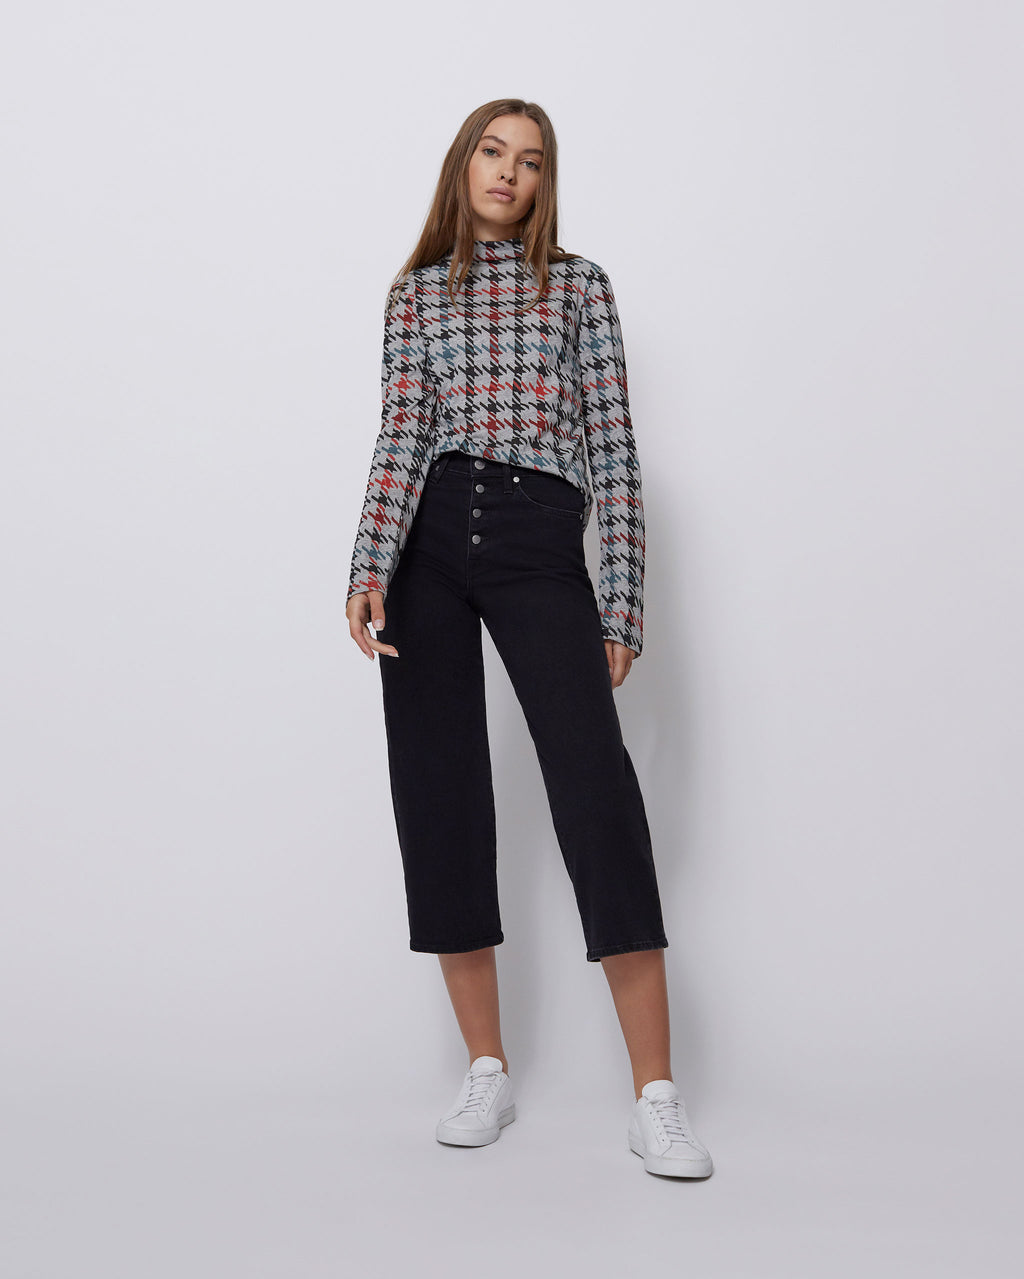 The Blair Top in Houndstooth Multi